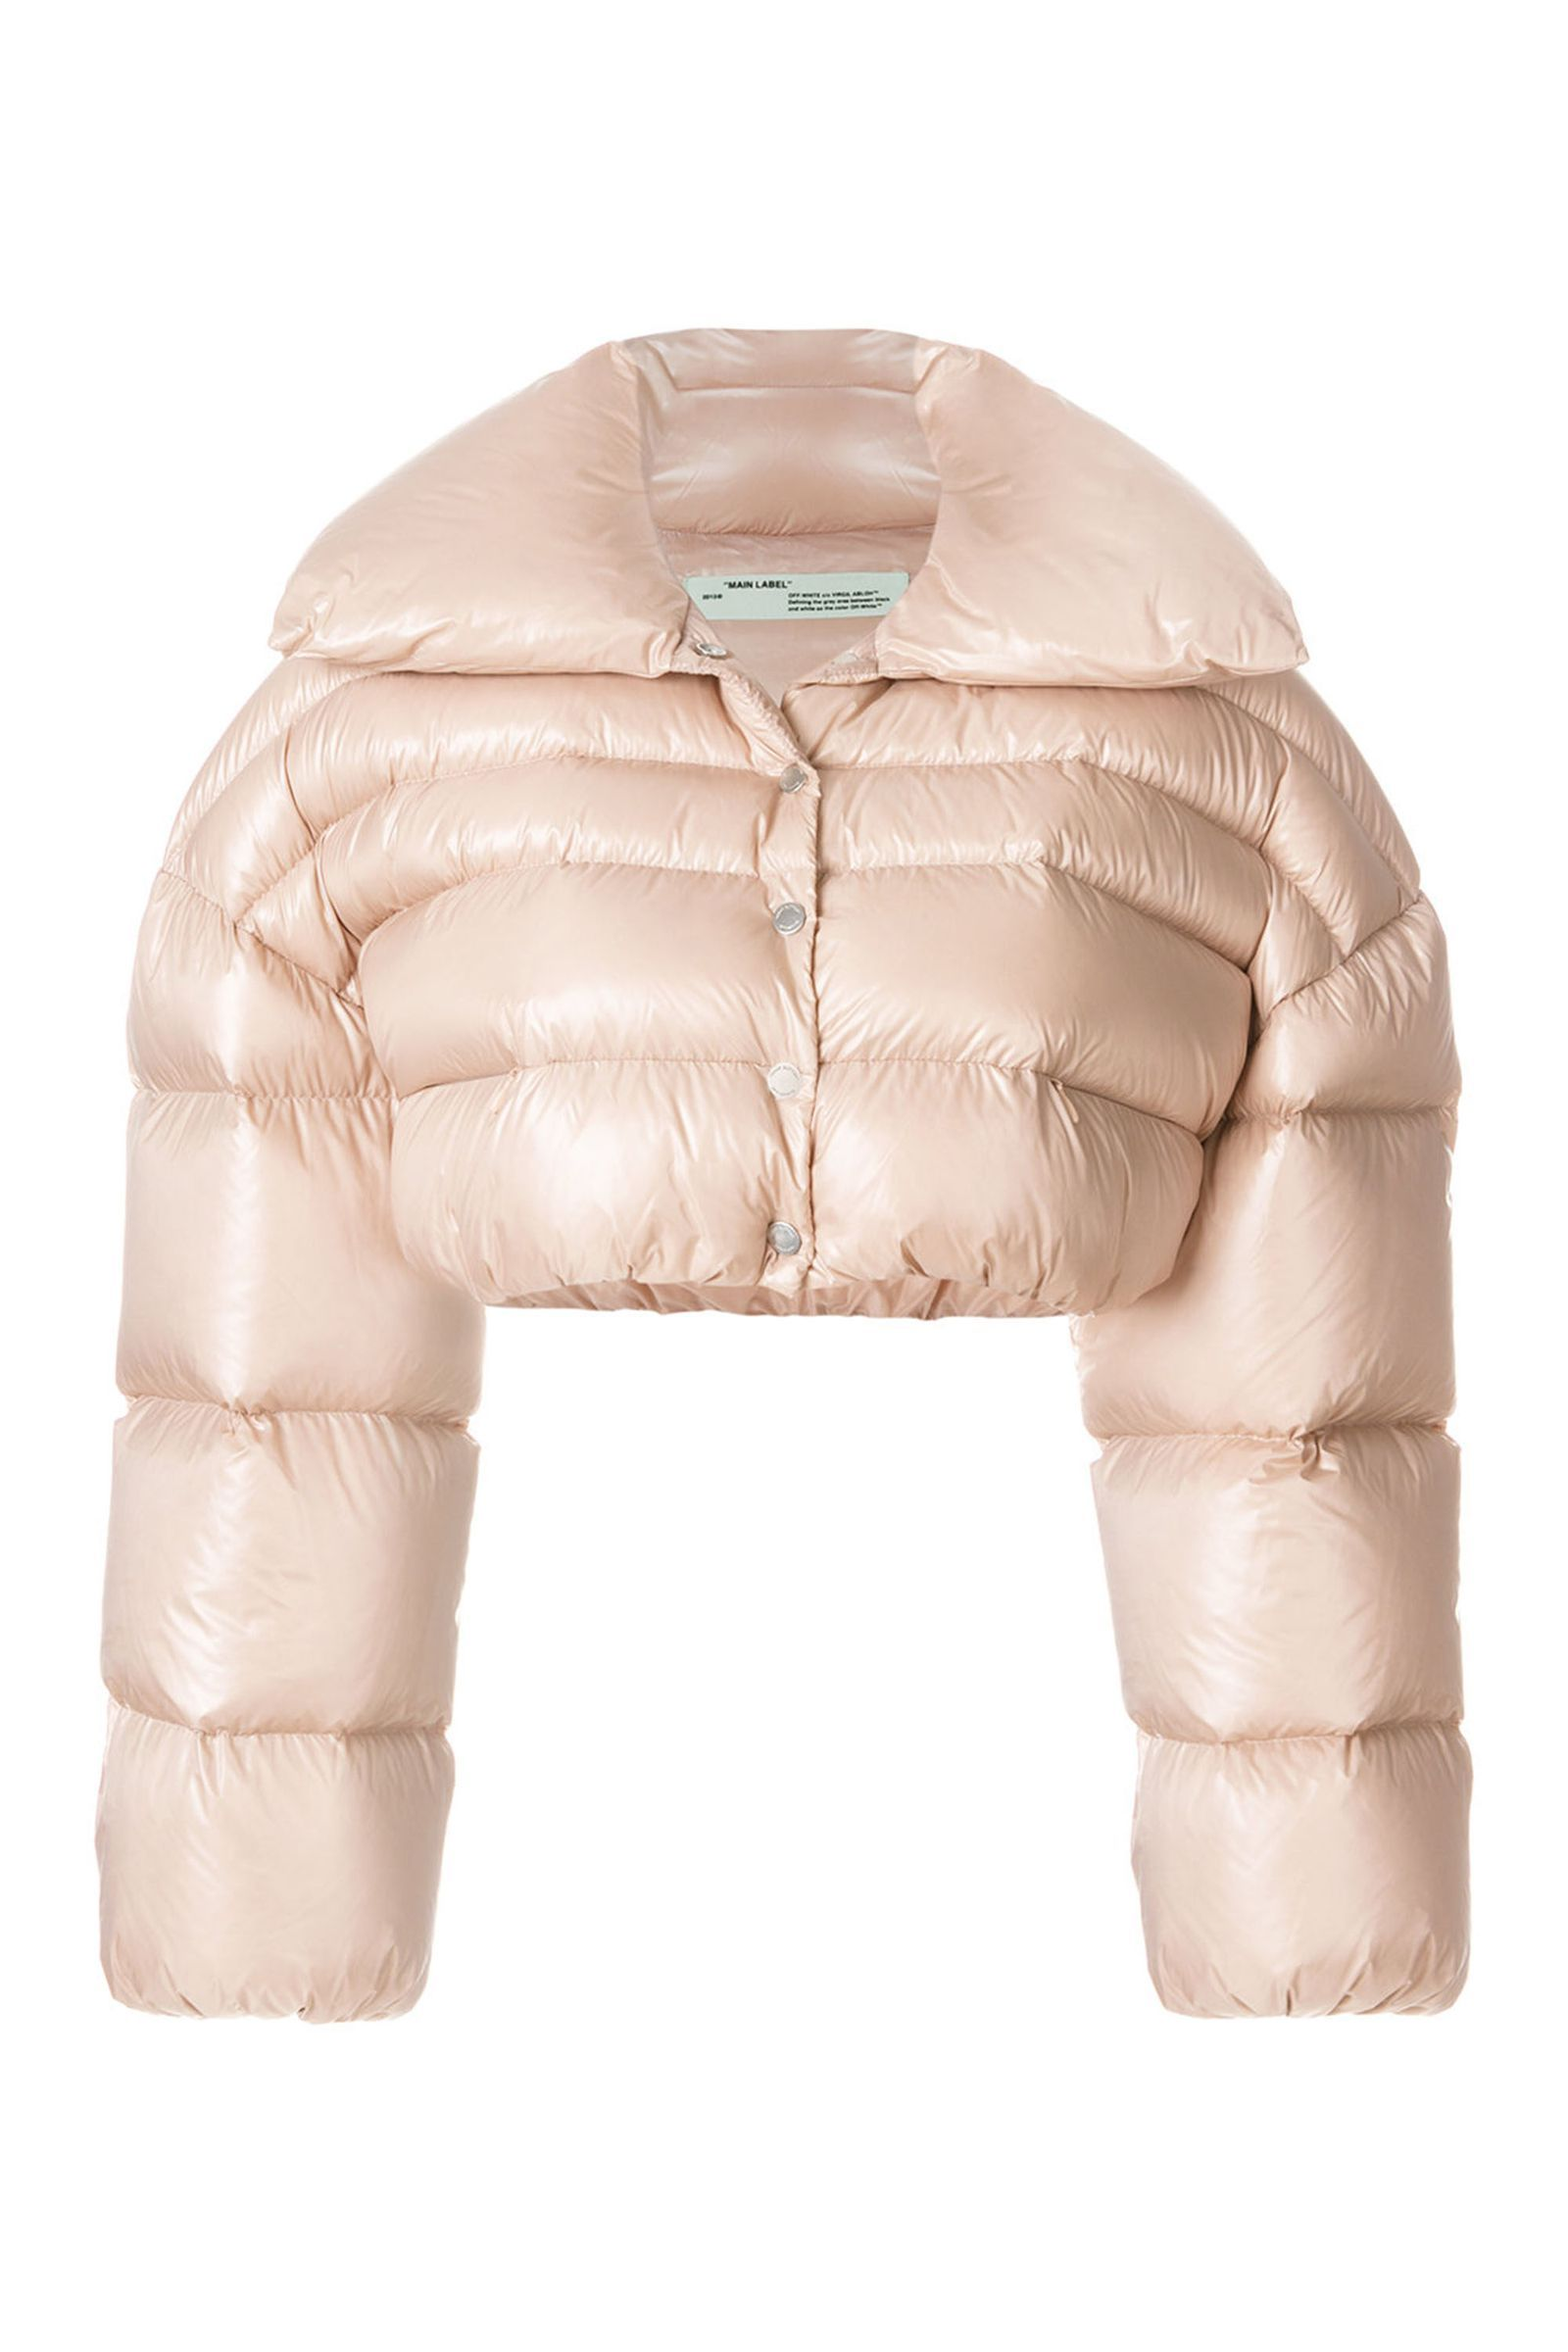 This Puffer Jacket Will Make You Feel Like Missy Elliot Cropped Puffer Jacket Puffer Jackets Jackets [ 2400 x 1600 Pixel ]